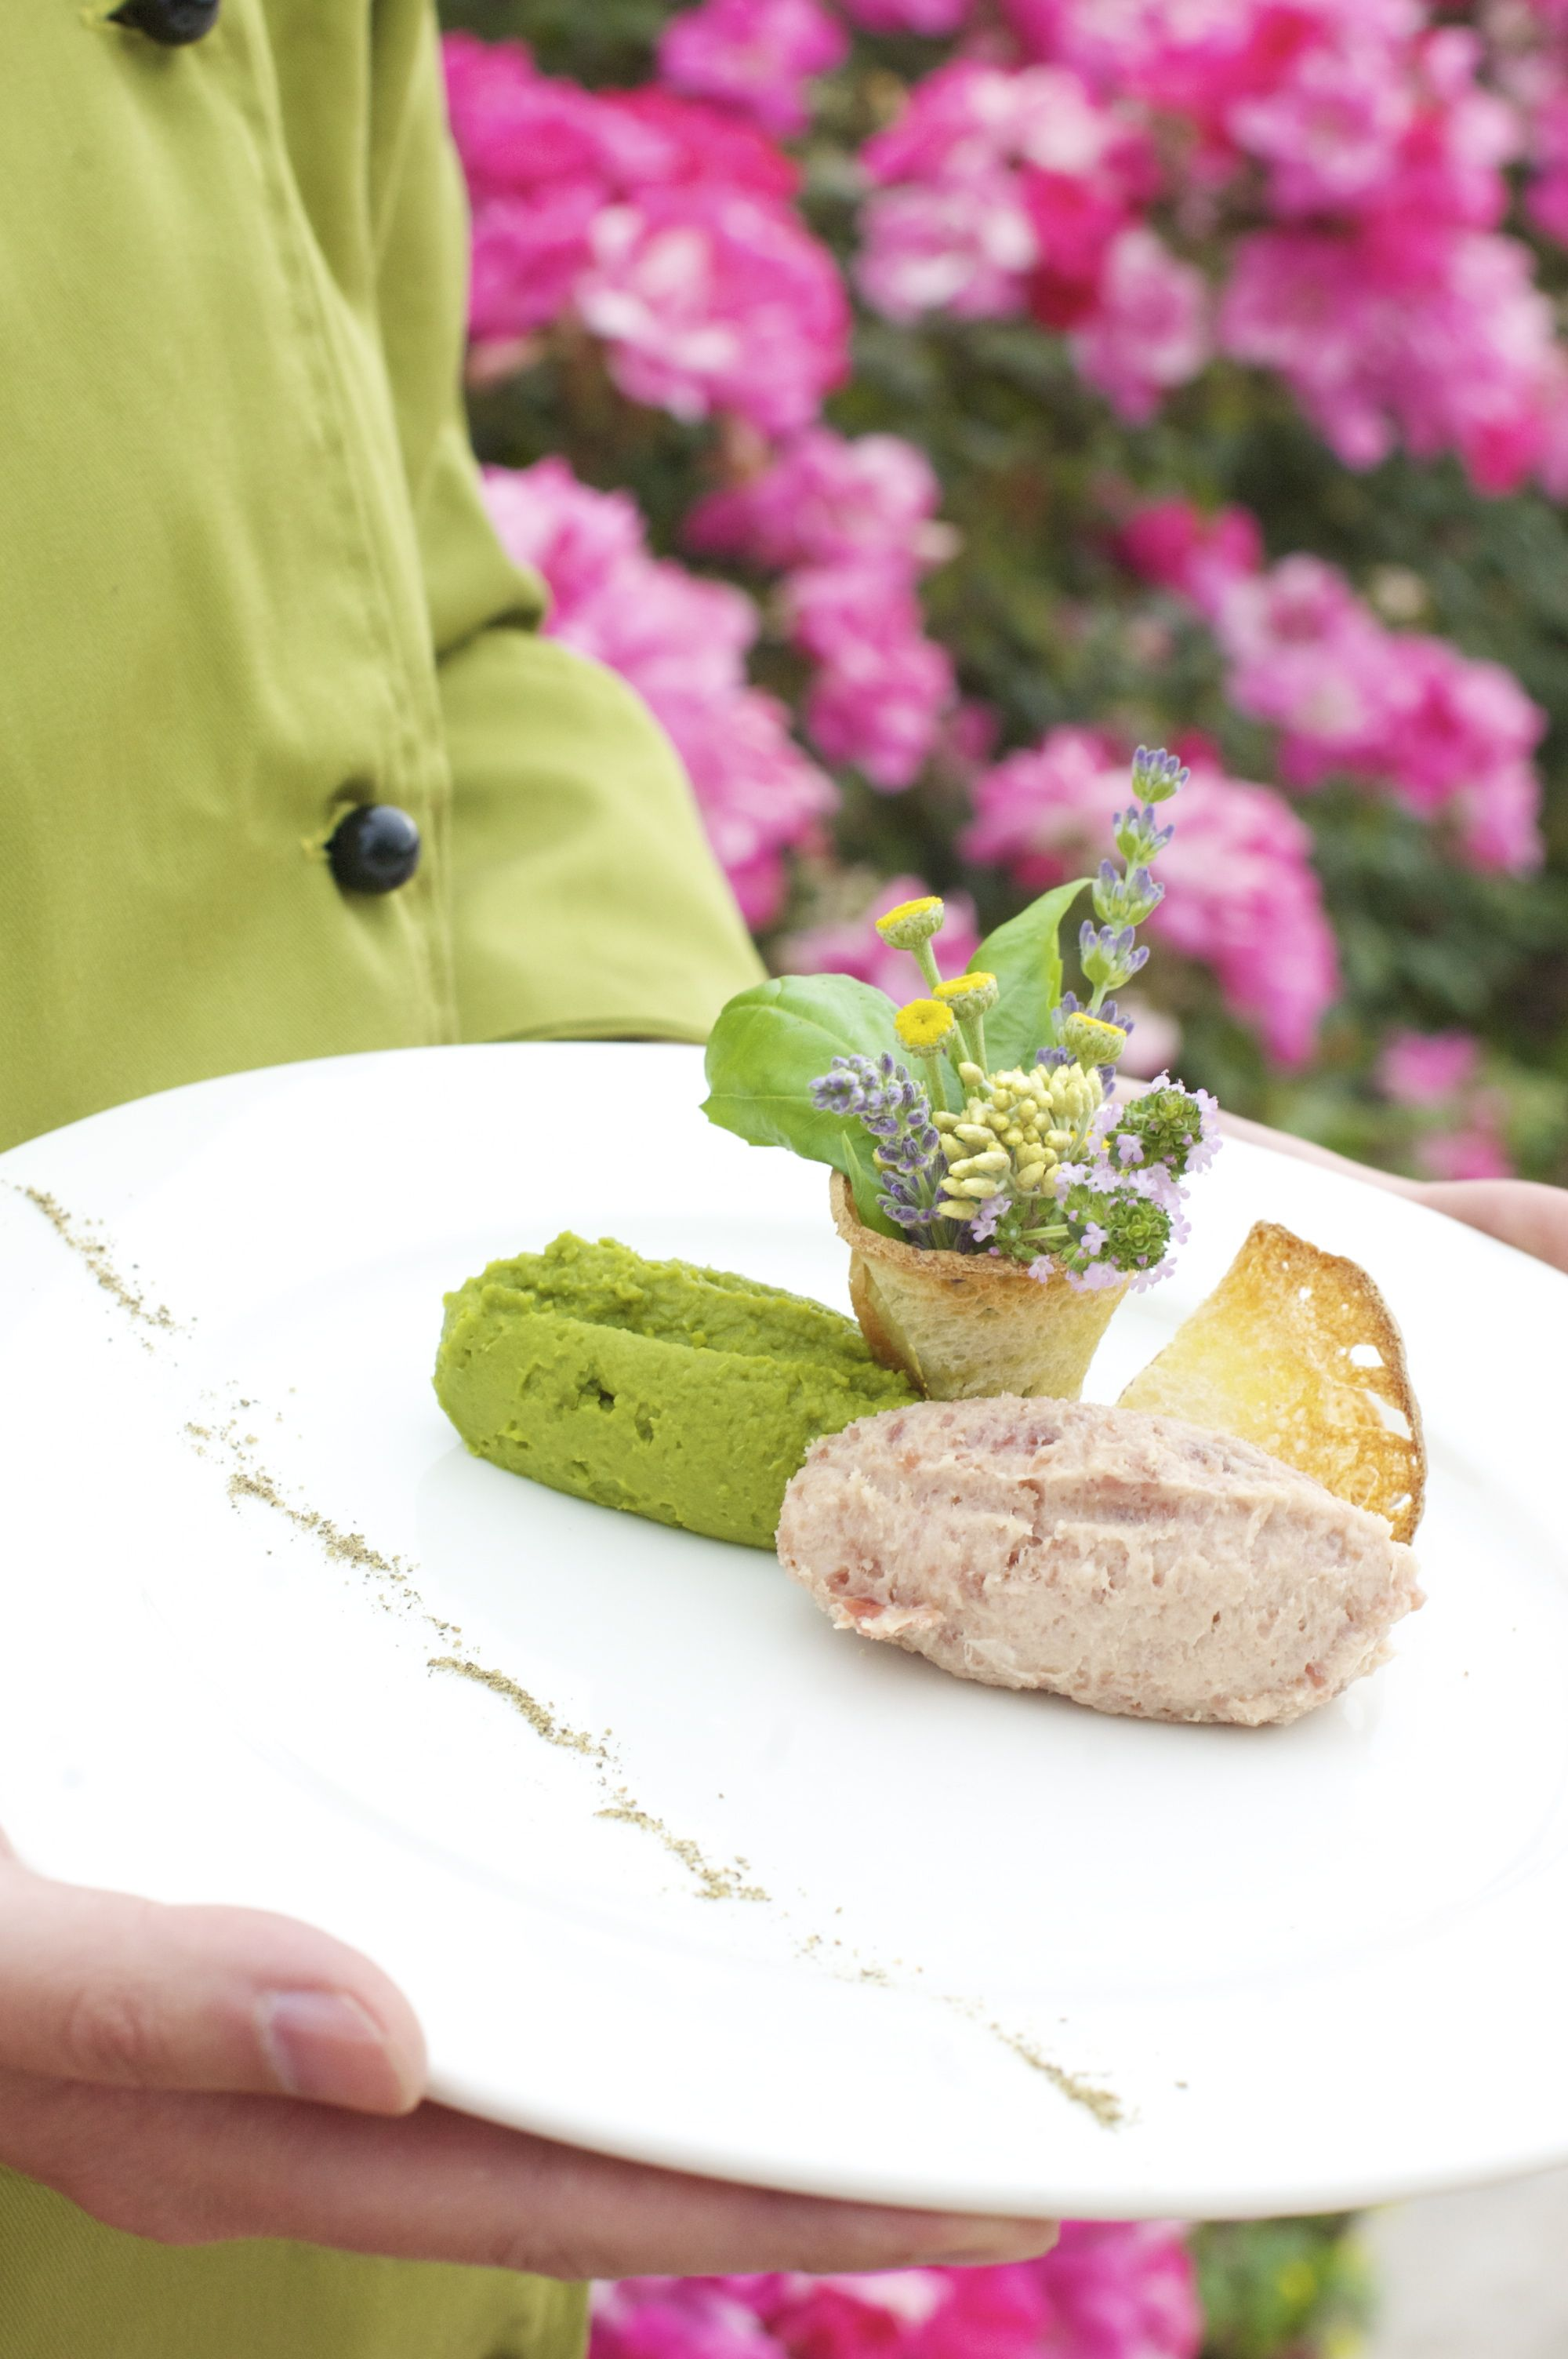 A nice luncheon ham spread which is served with mashed peas. Delicious!